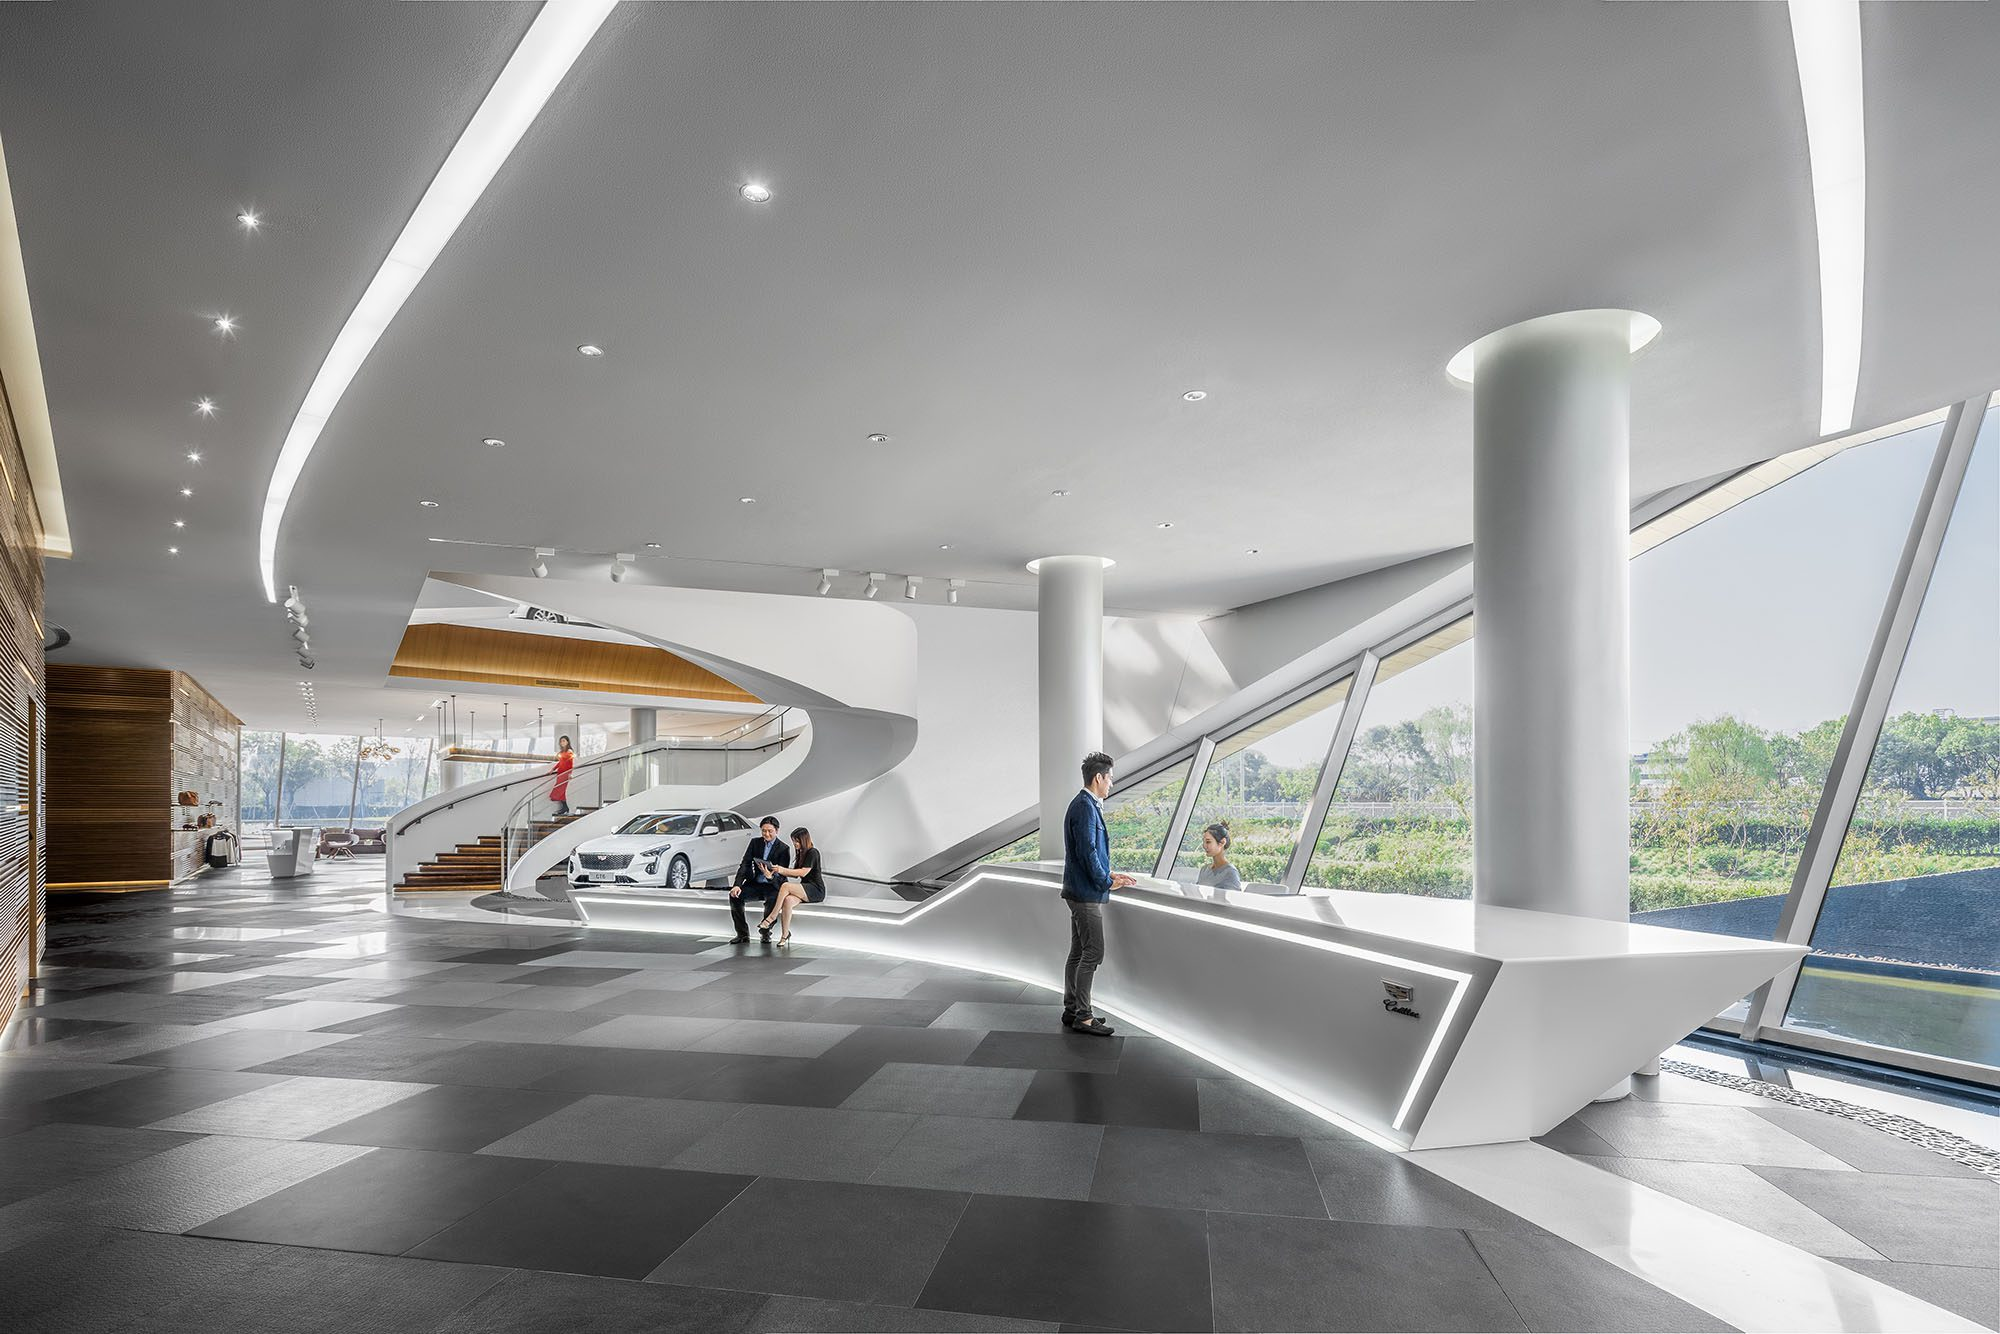 Cadillac House in Shanghai, China, is the Retail Design Institute's 2019 Store of the Year